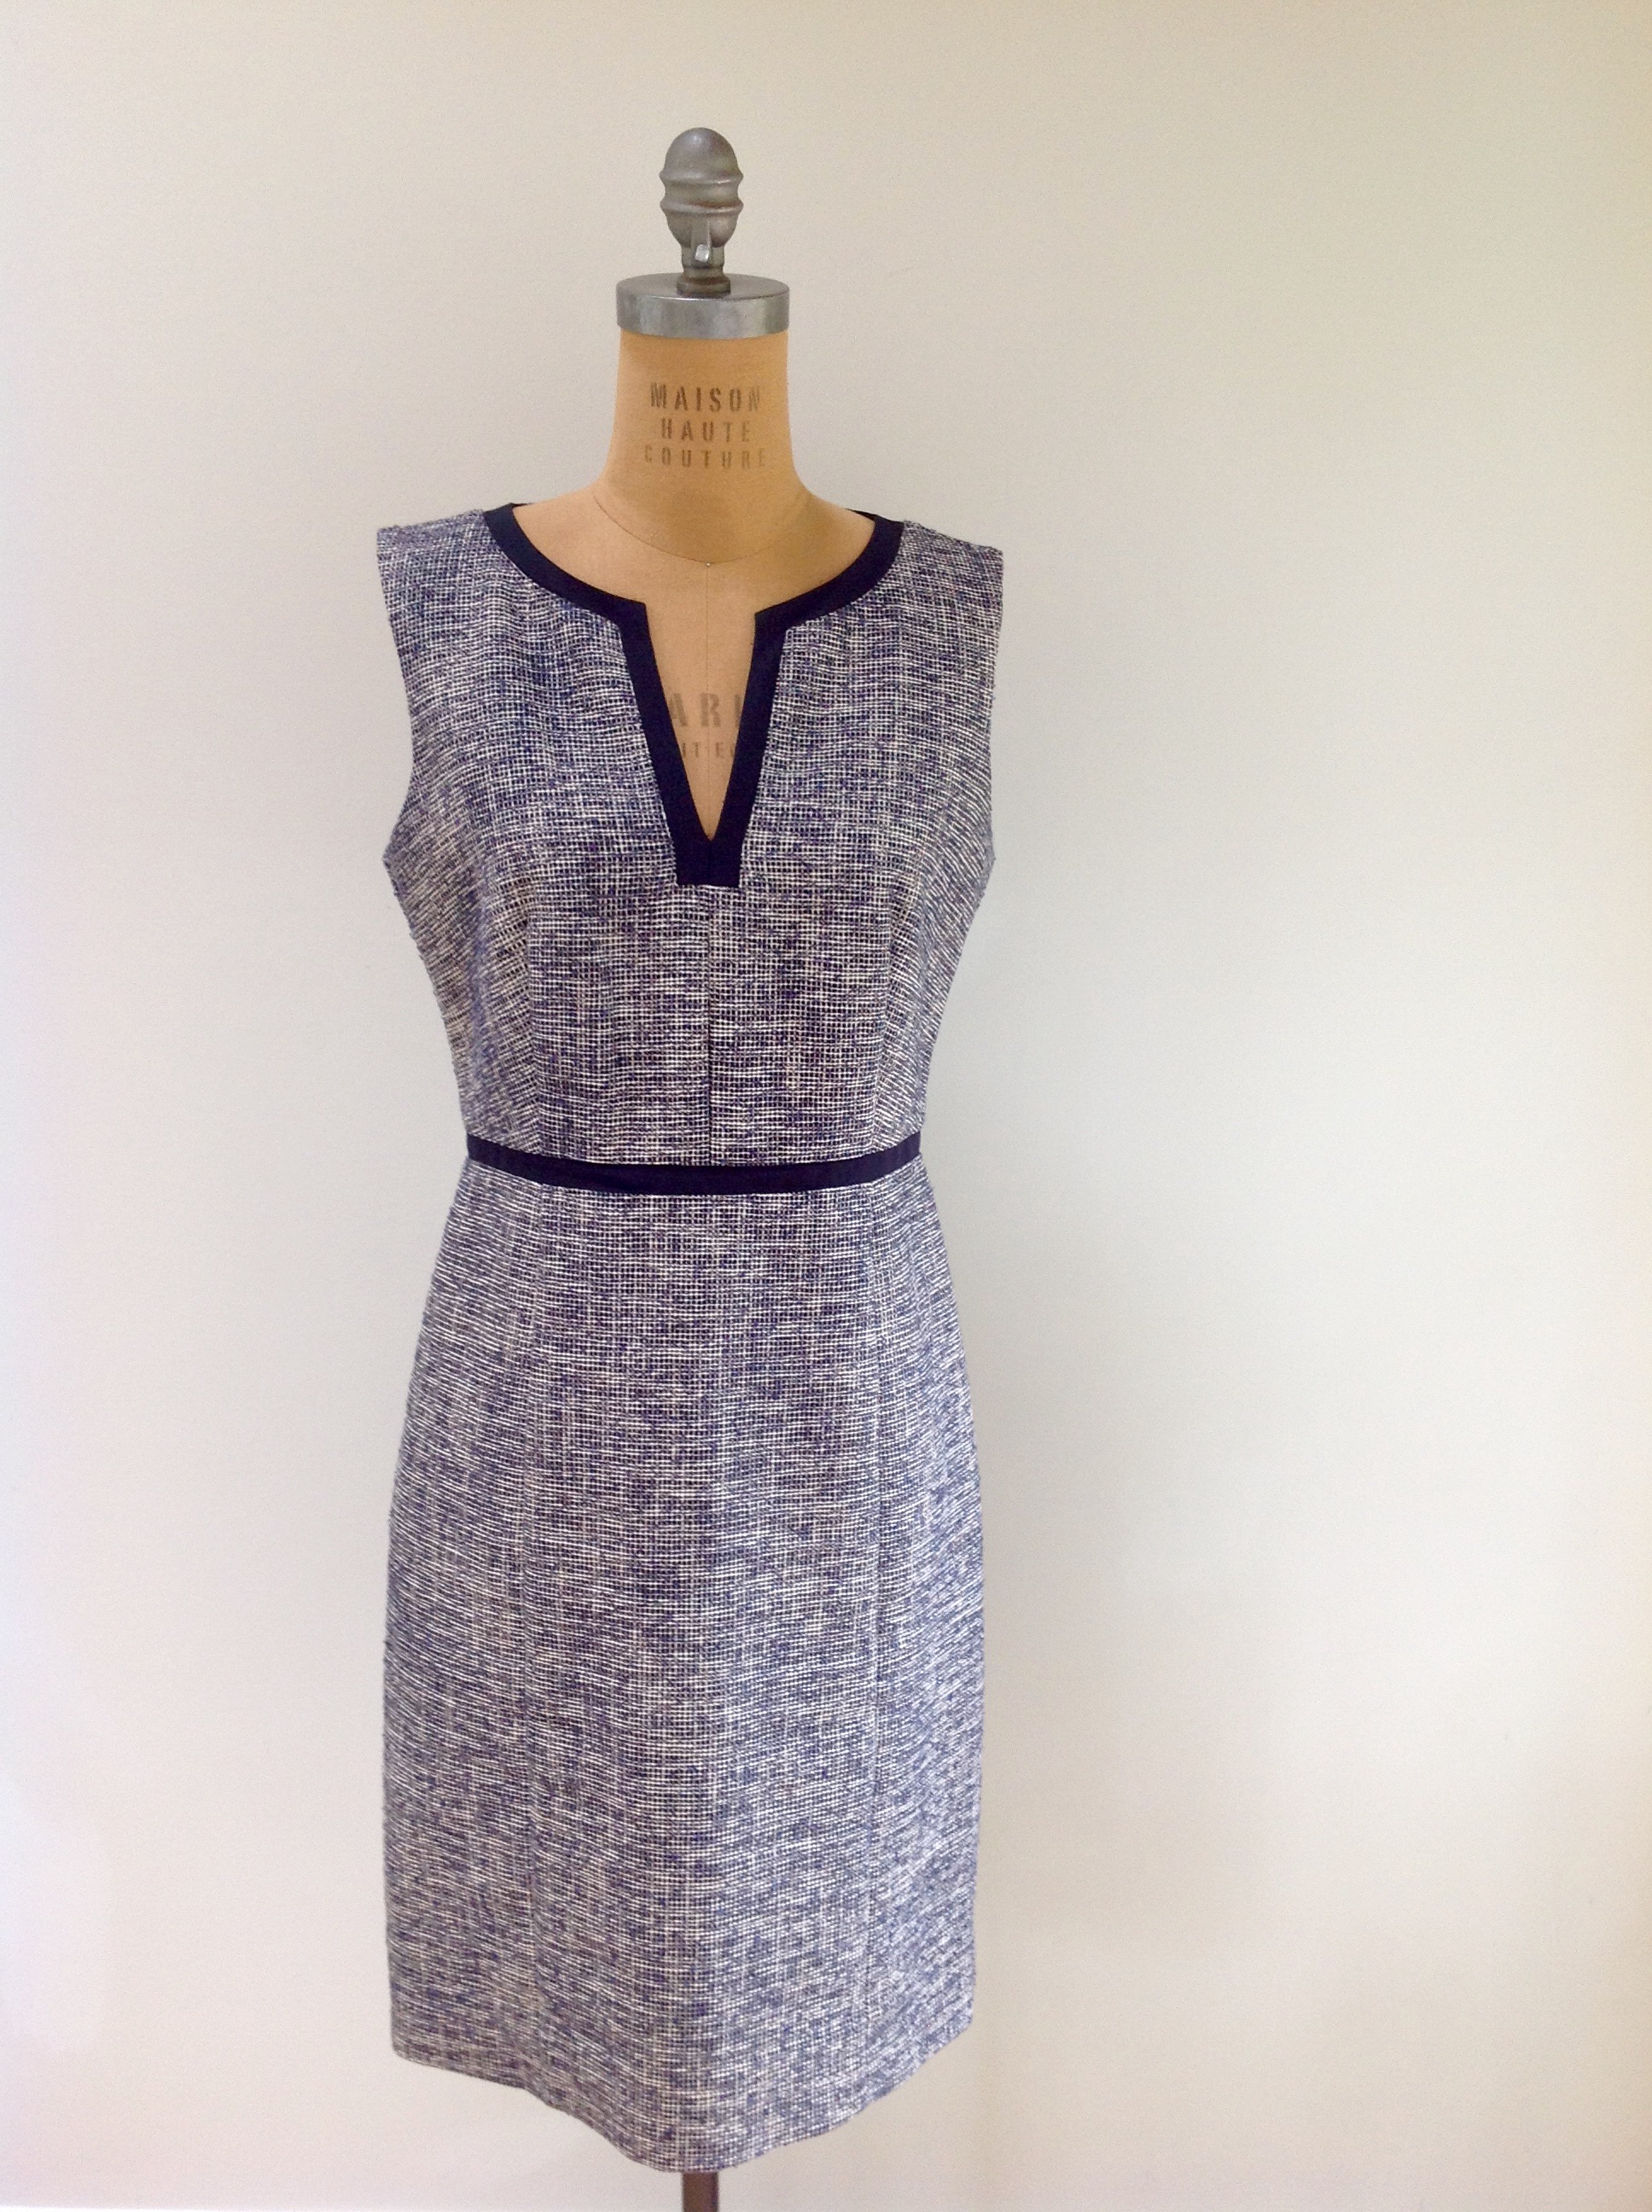 Tory Burch Tweed Dress